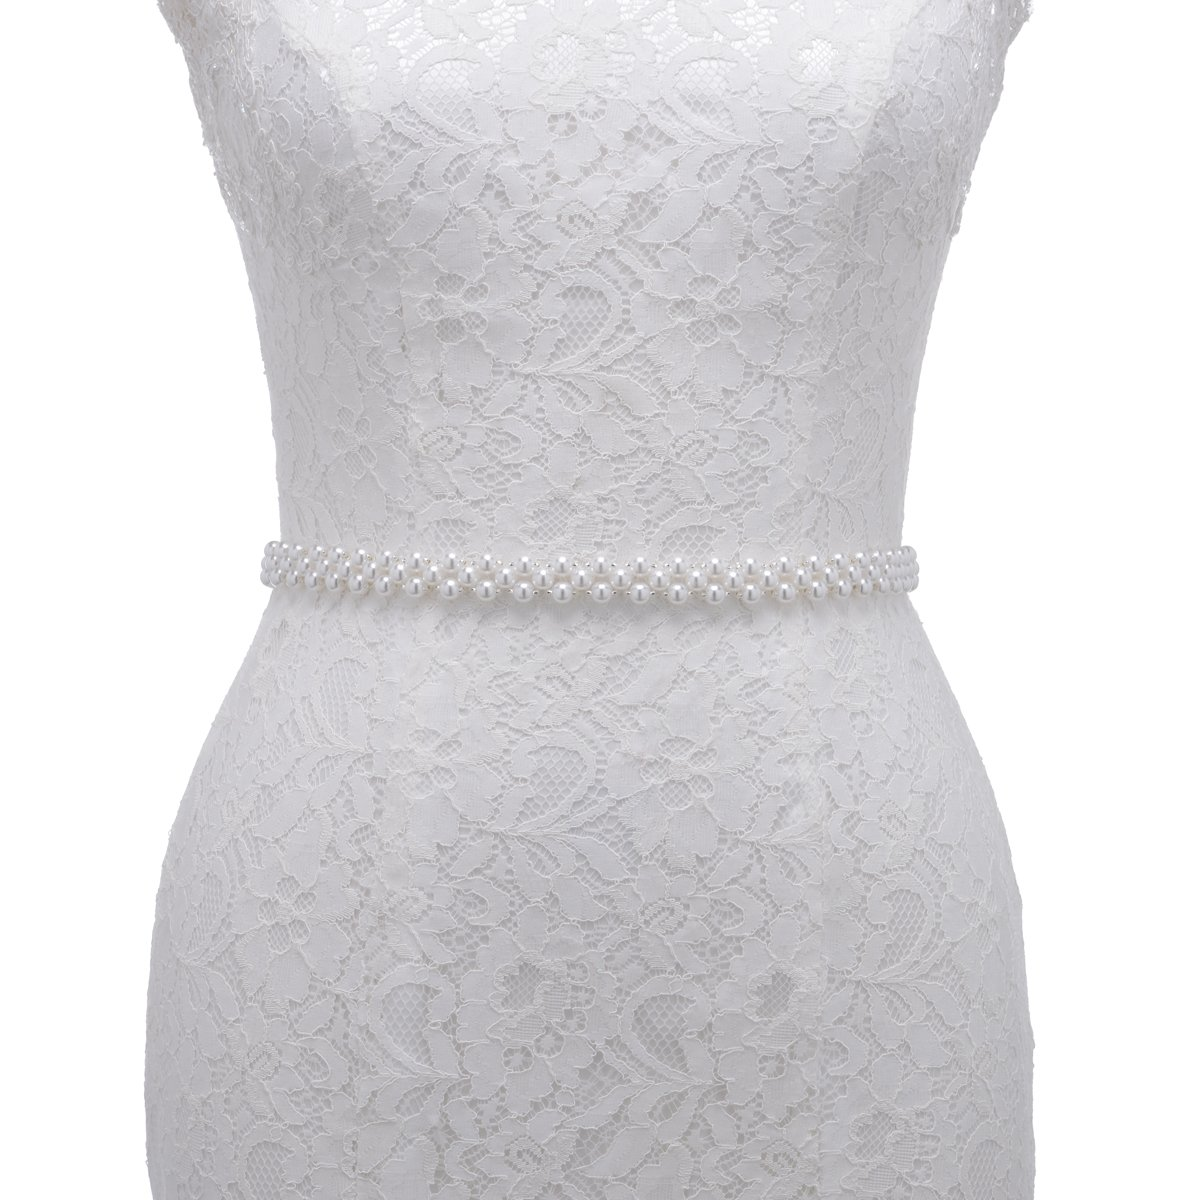 Remedios Pure White Pearls Bridal Wedding Sash With Organza Ribbon